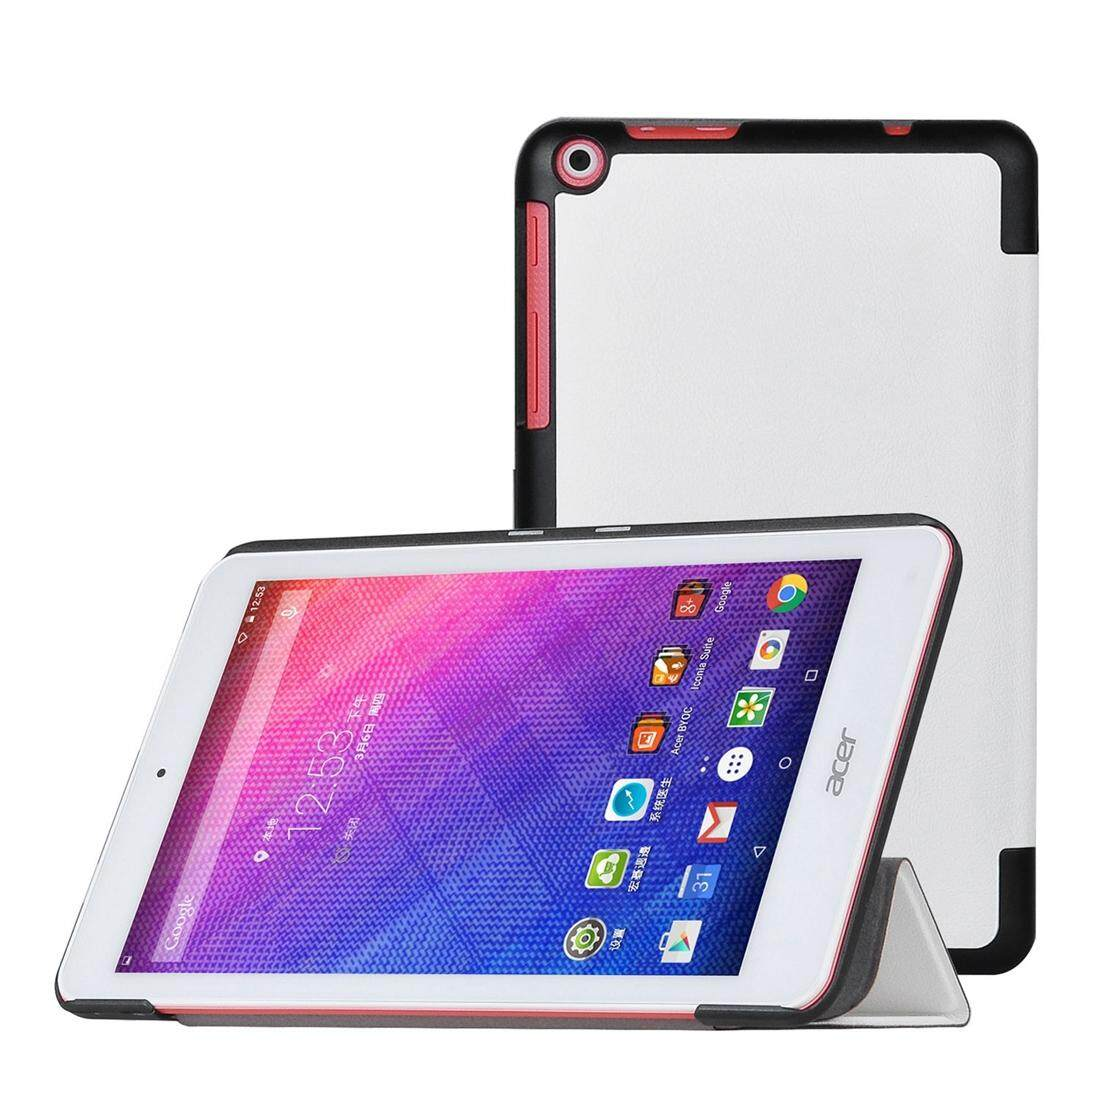 Cek Harga Leather Holder Cover Case For Acer Iconia One 7 B1 730 Tablet 723 Talk Slim Smart 8 820 Inch